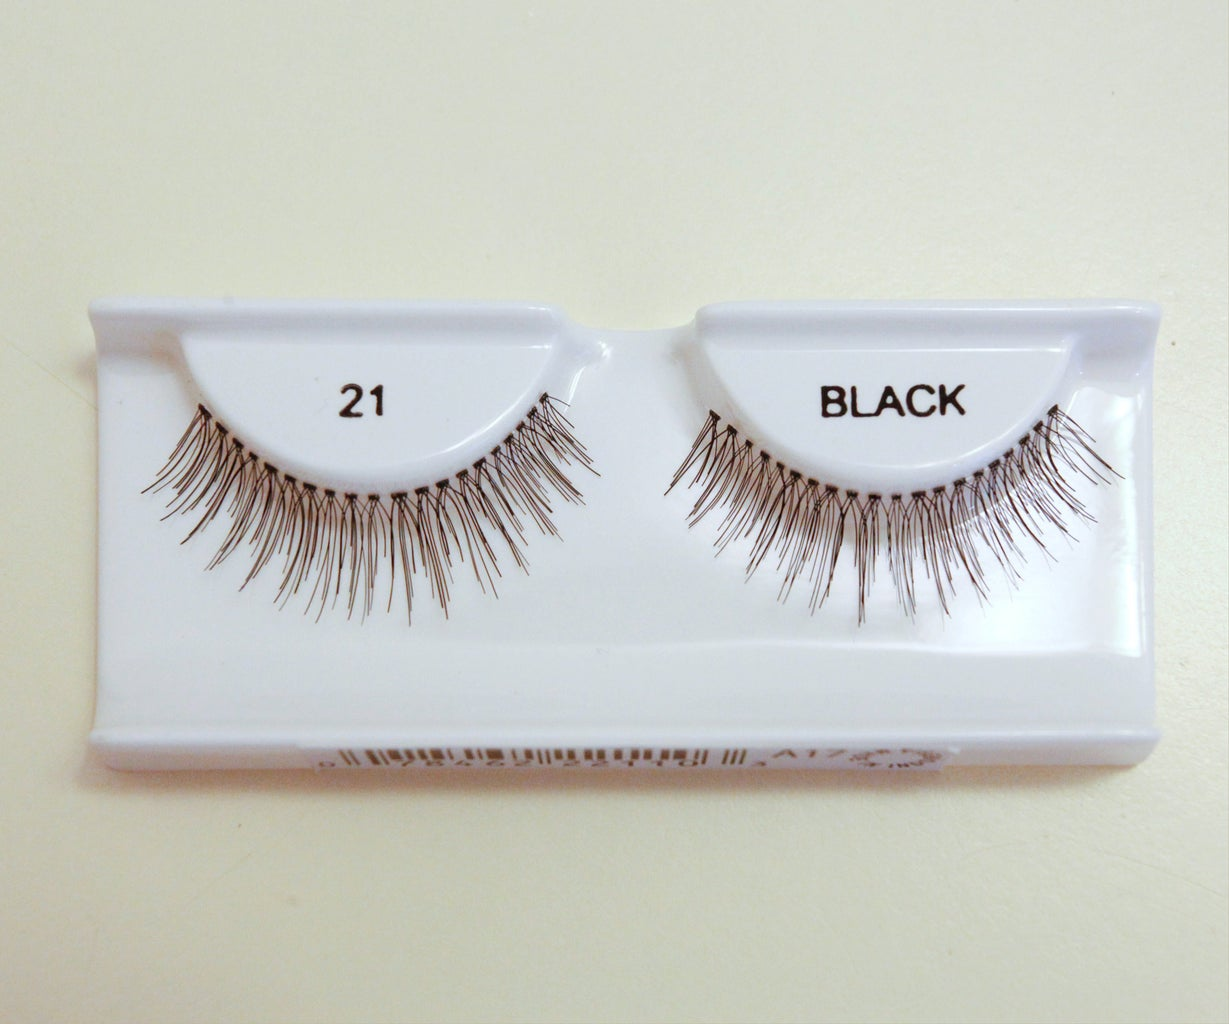 Fit and Bend the Lashes